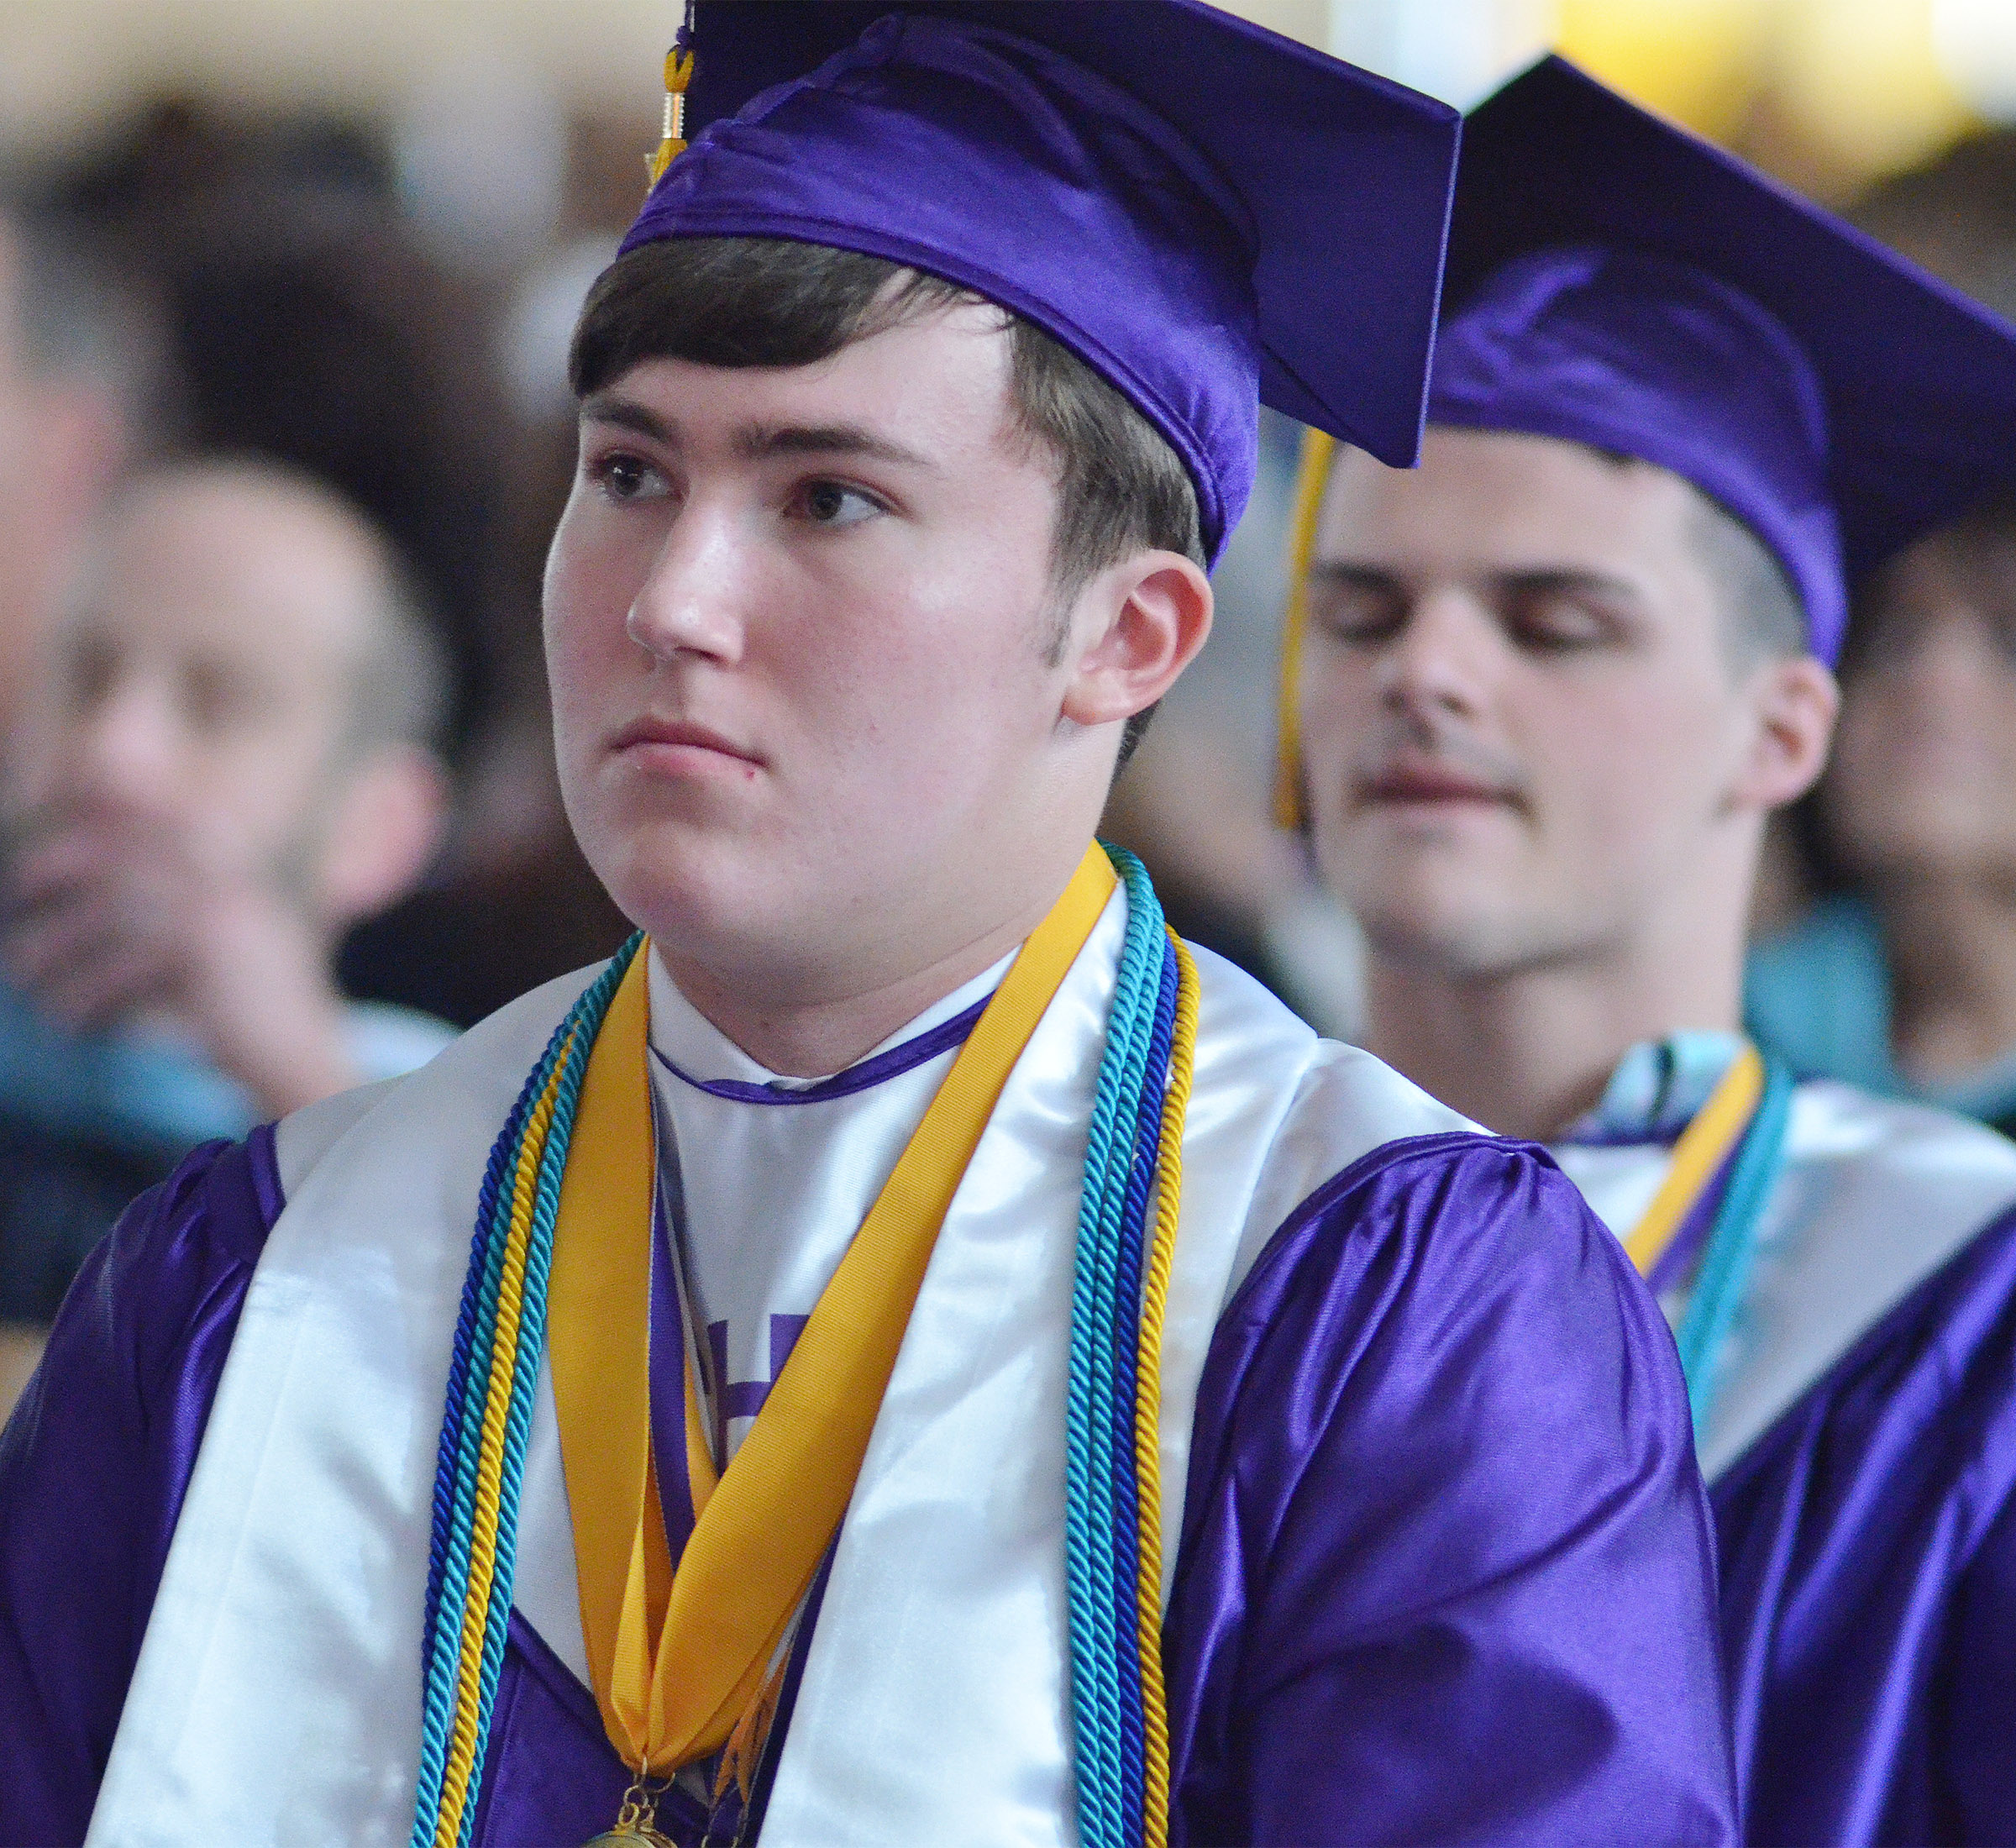 CHS senior Zack Settle listens as Principal Kirby Smith speaks to his class.